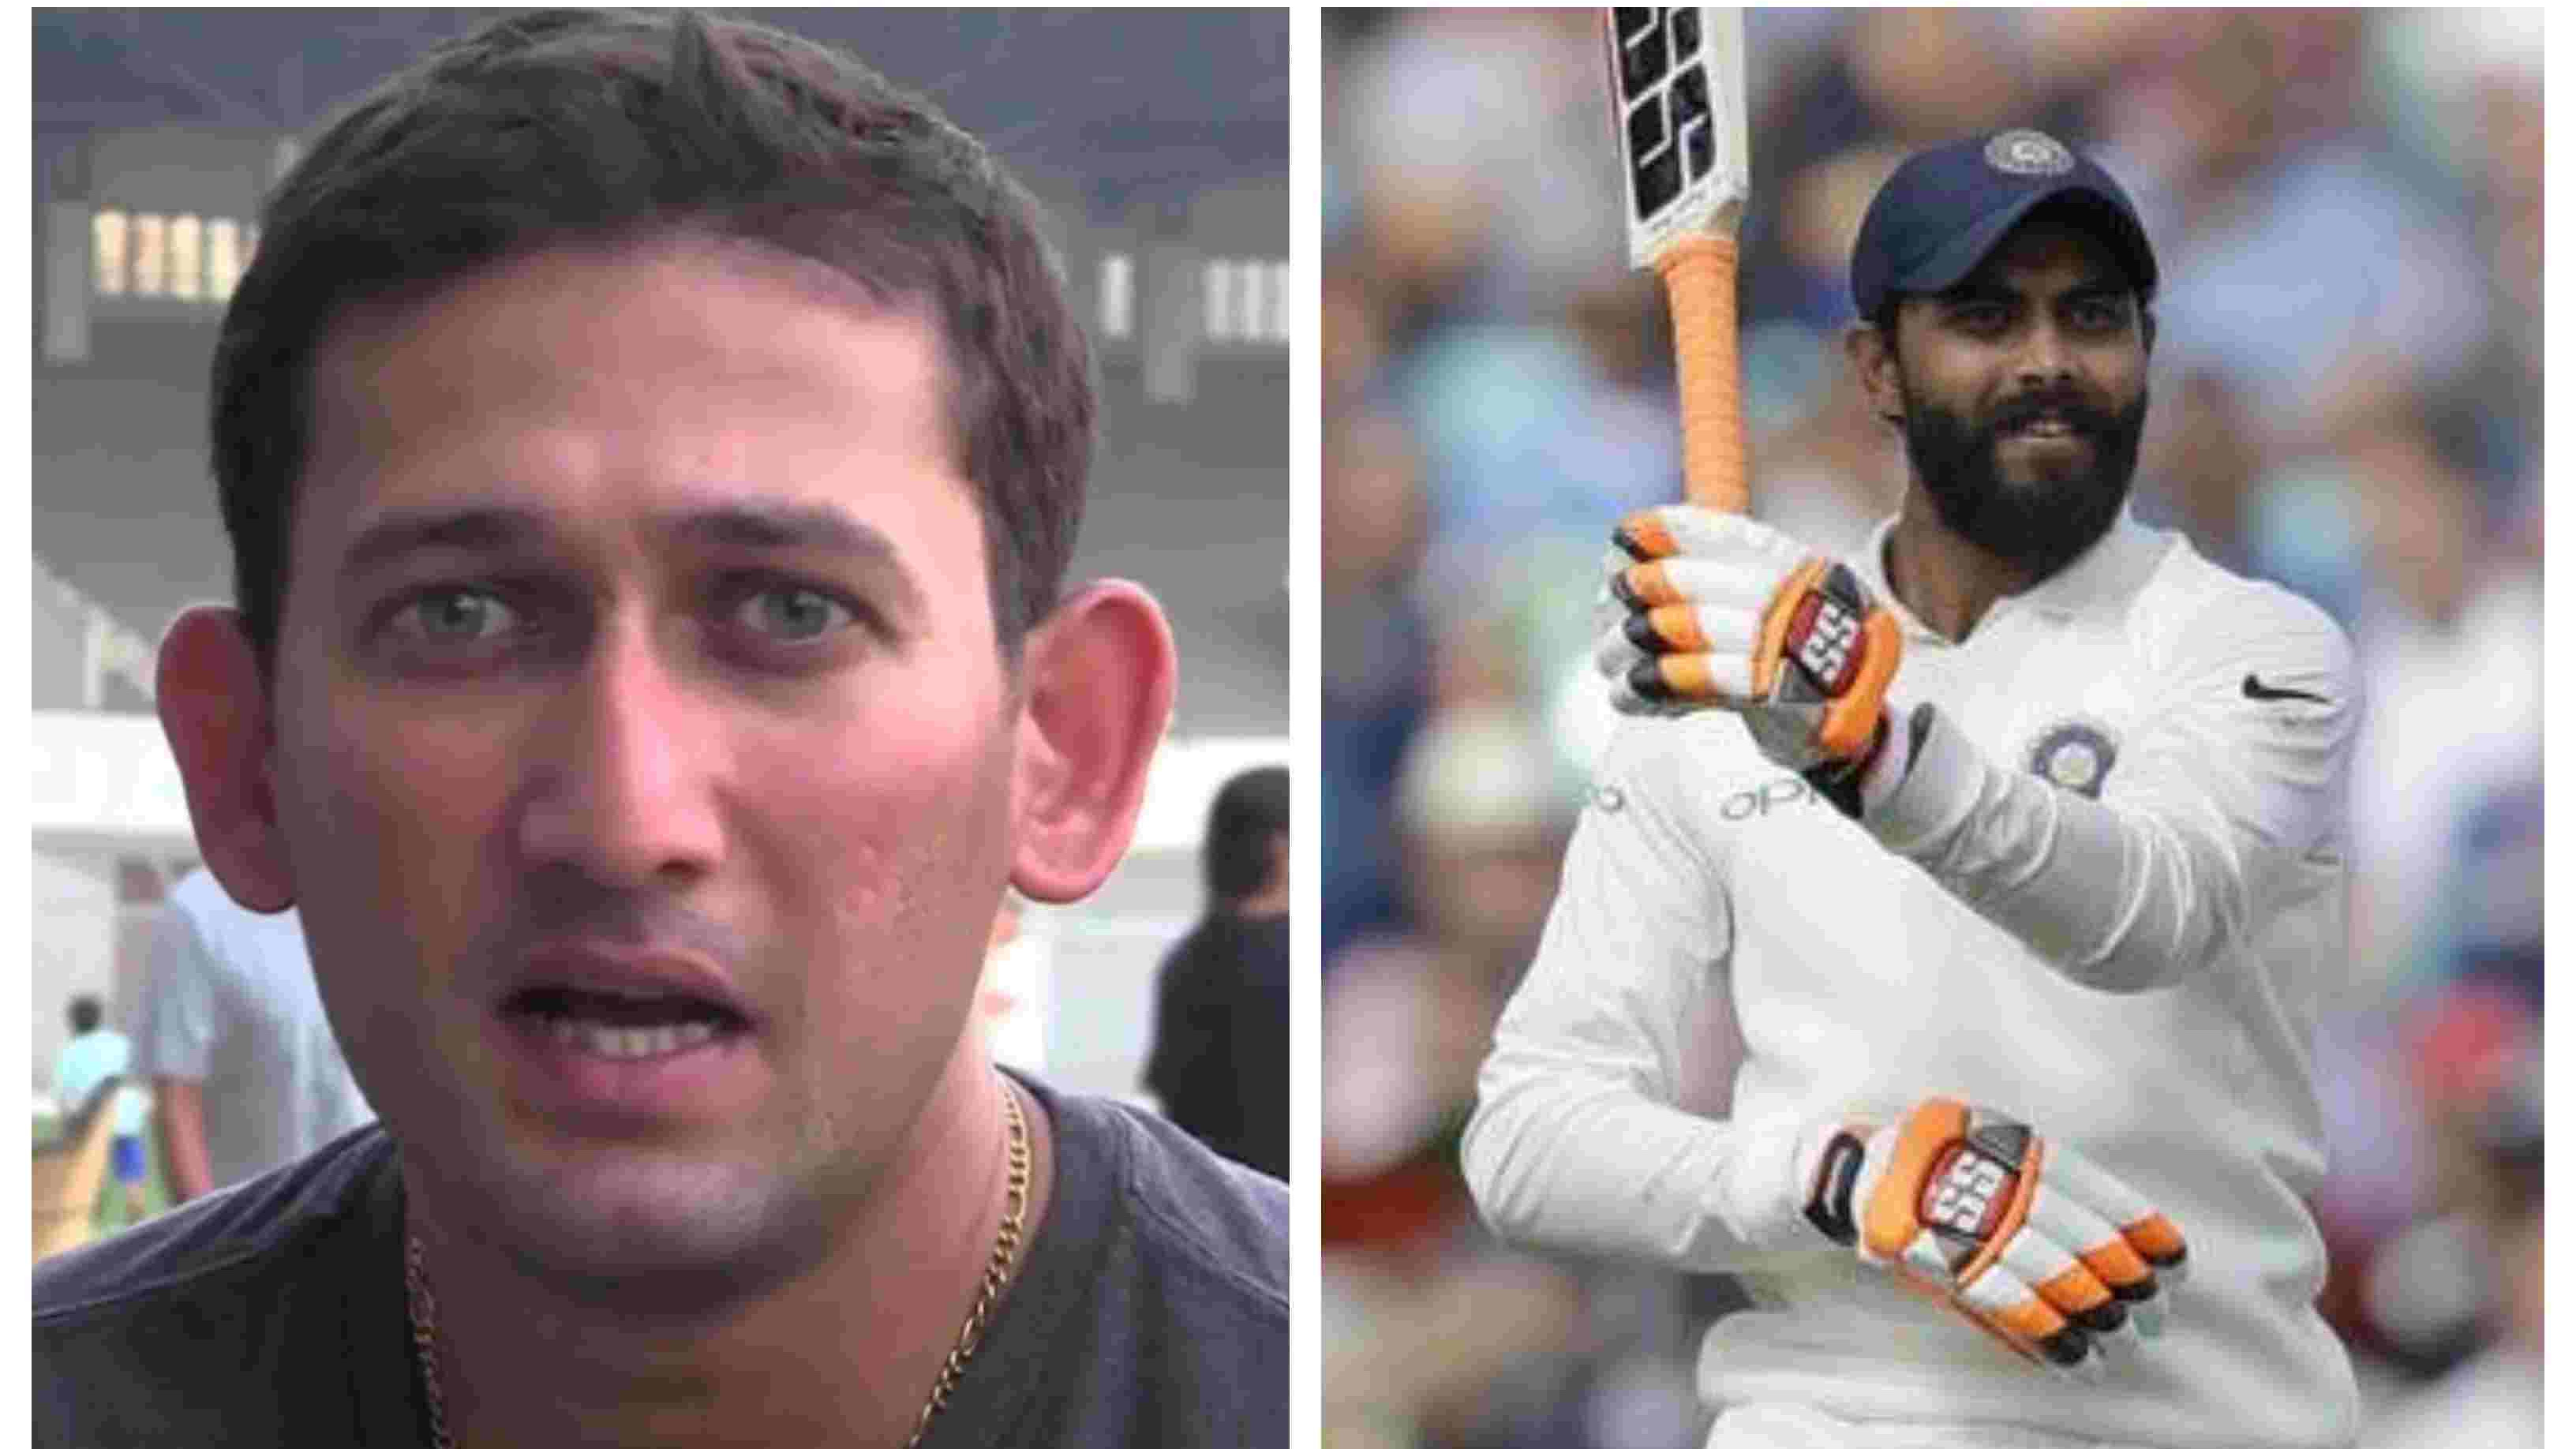 IND v WI 2018: Jadeja should bat ahead of Ashwin in Australia Test series, says Ajit Agarkar